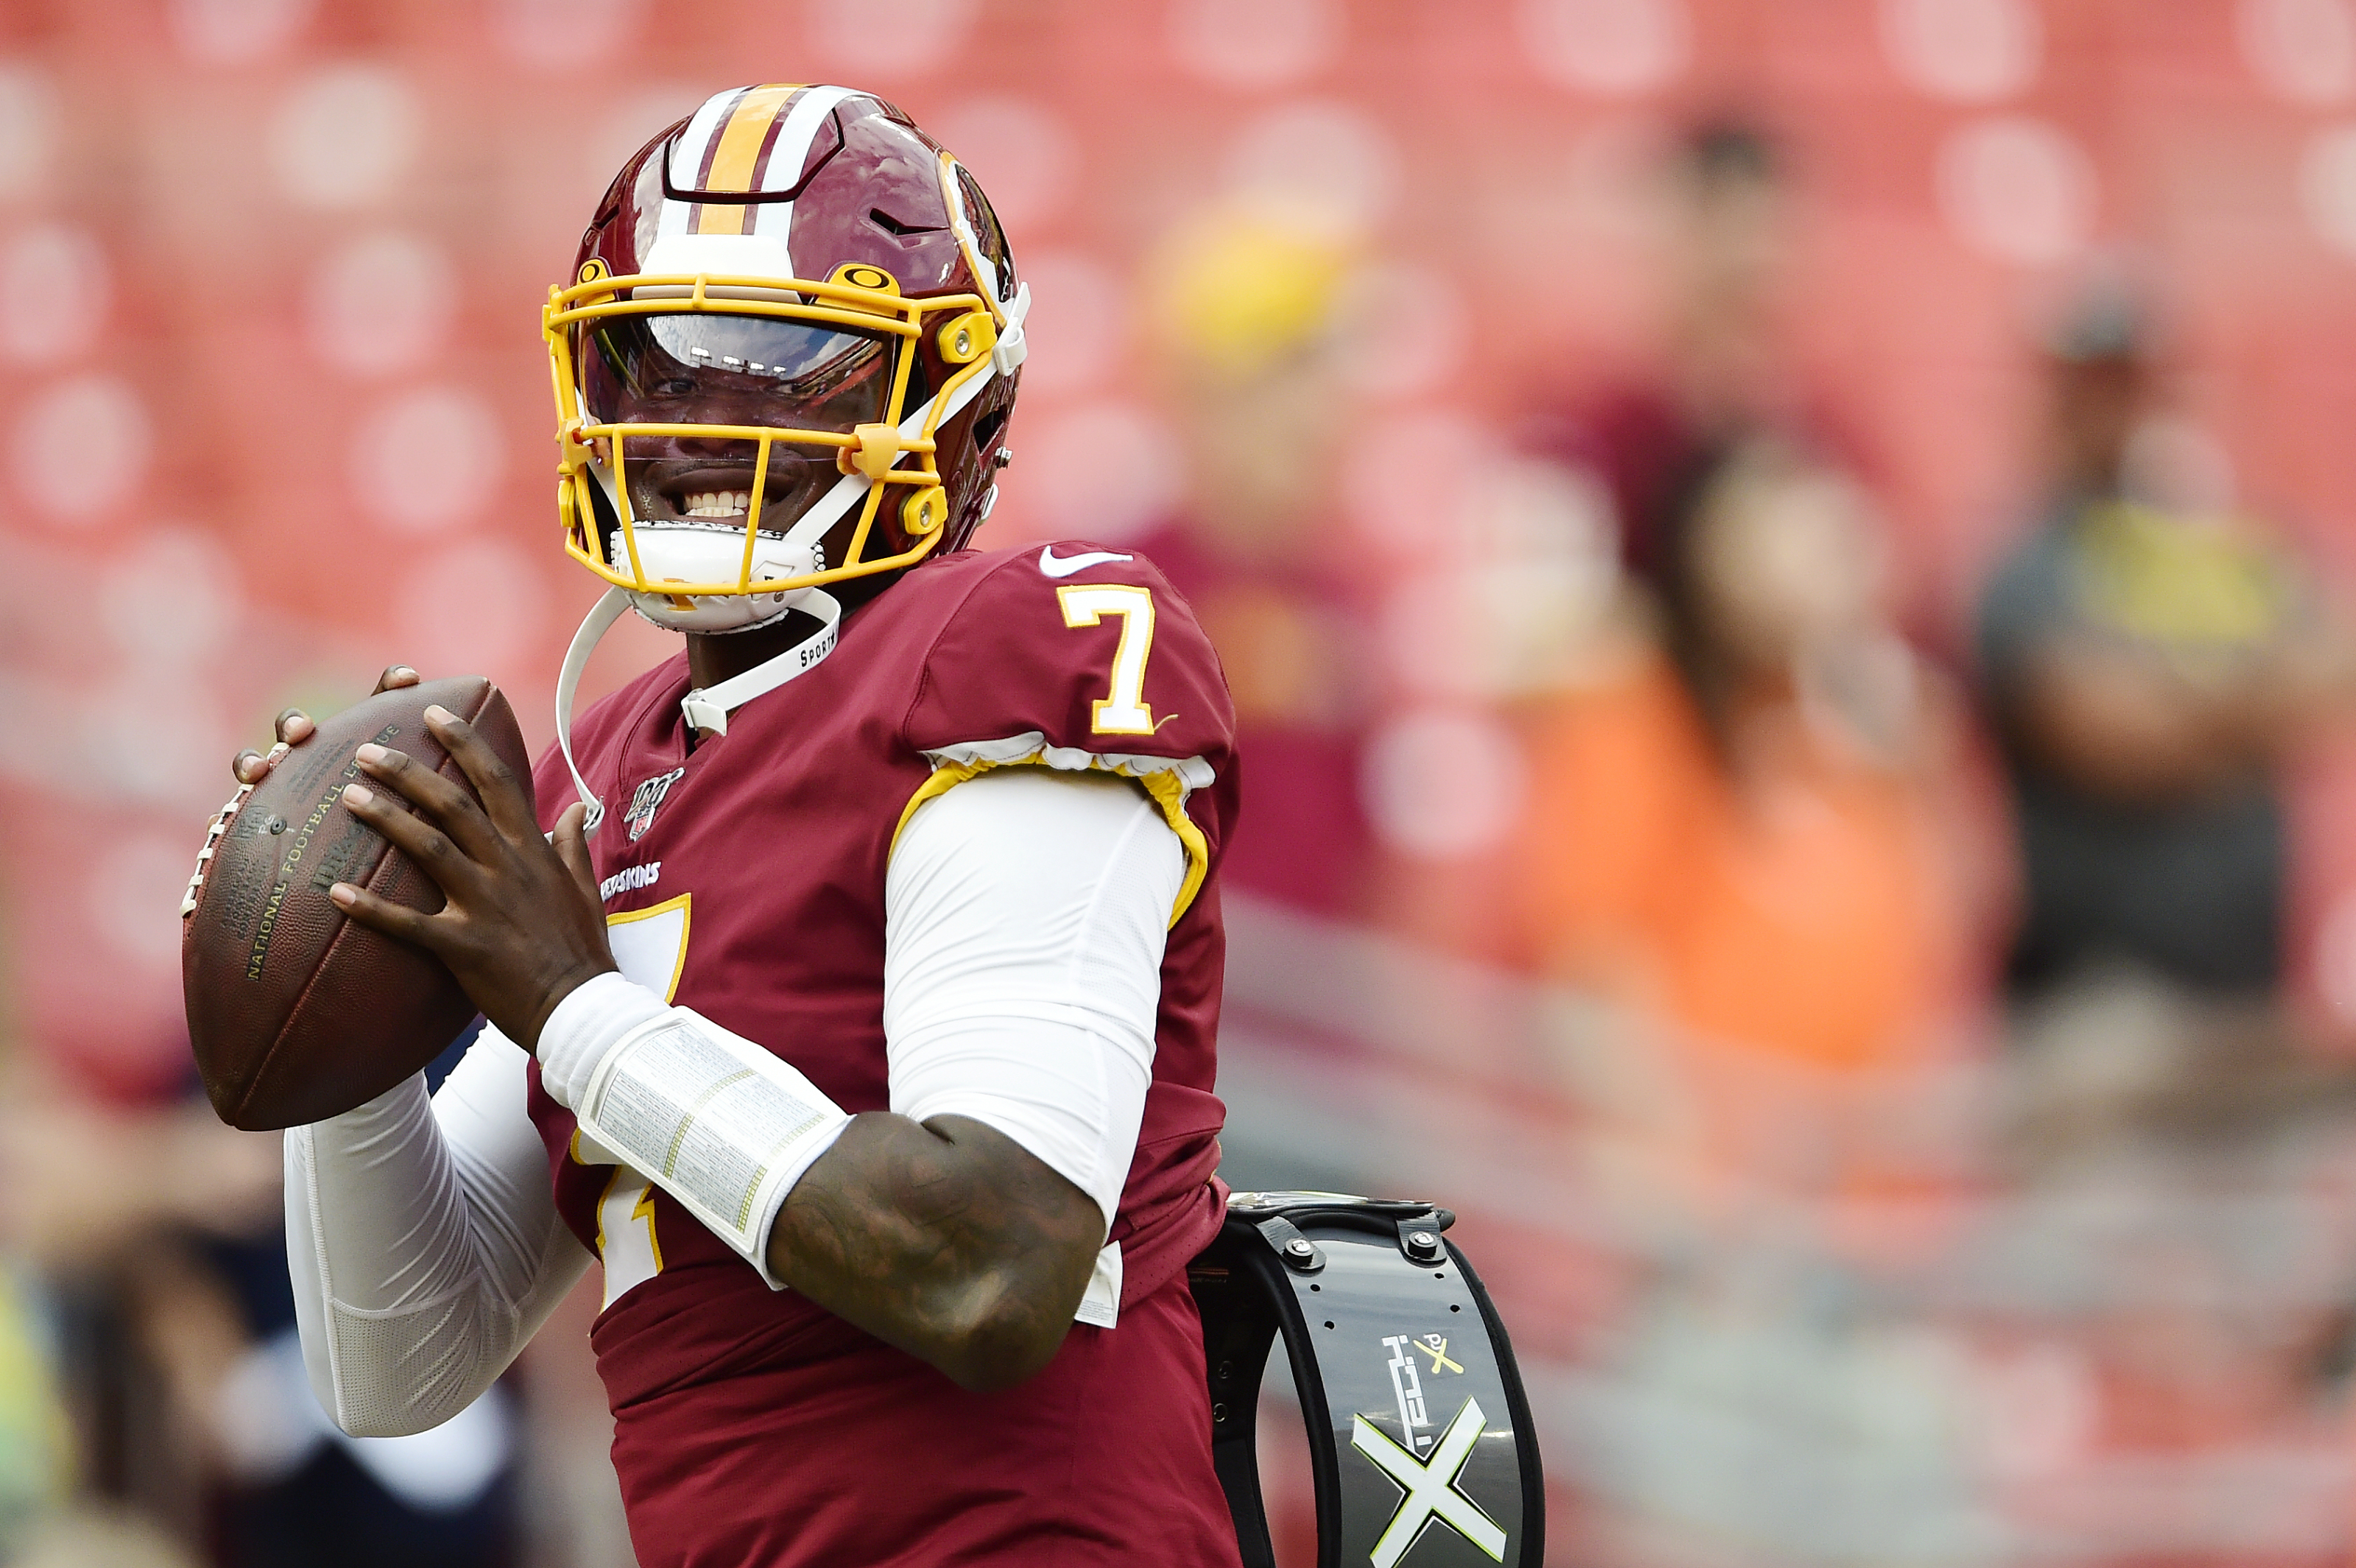 Dwayne Haskins will start the Redskins final preseason game